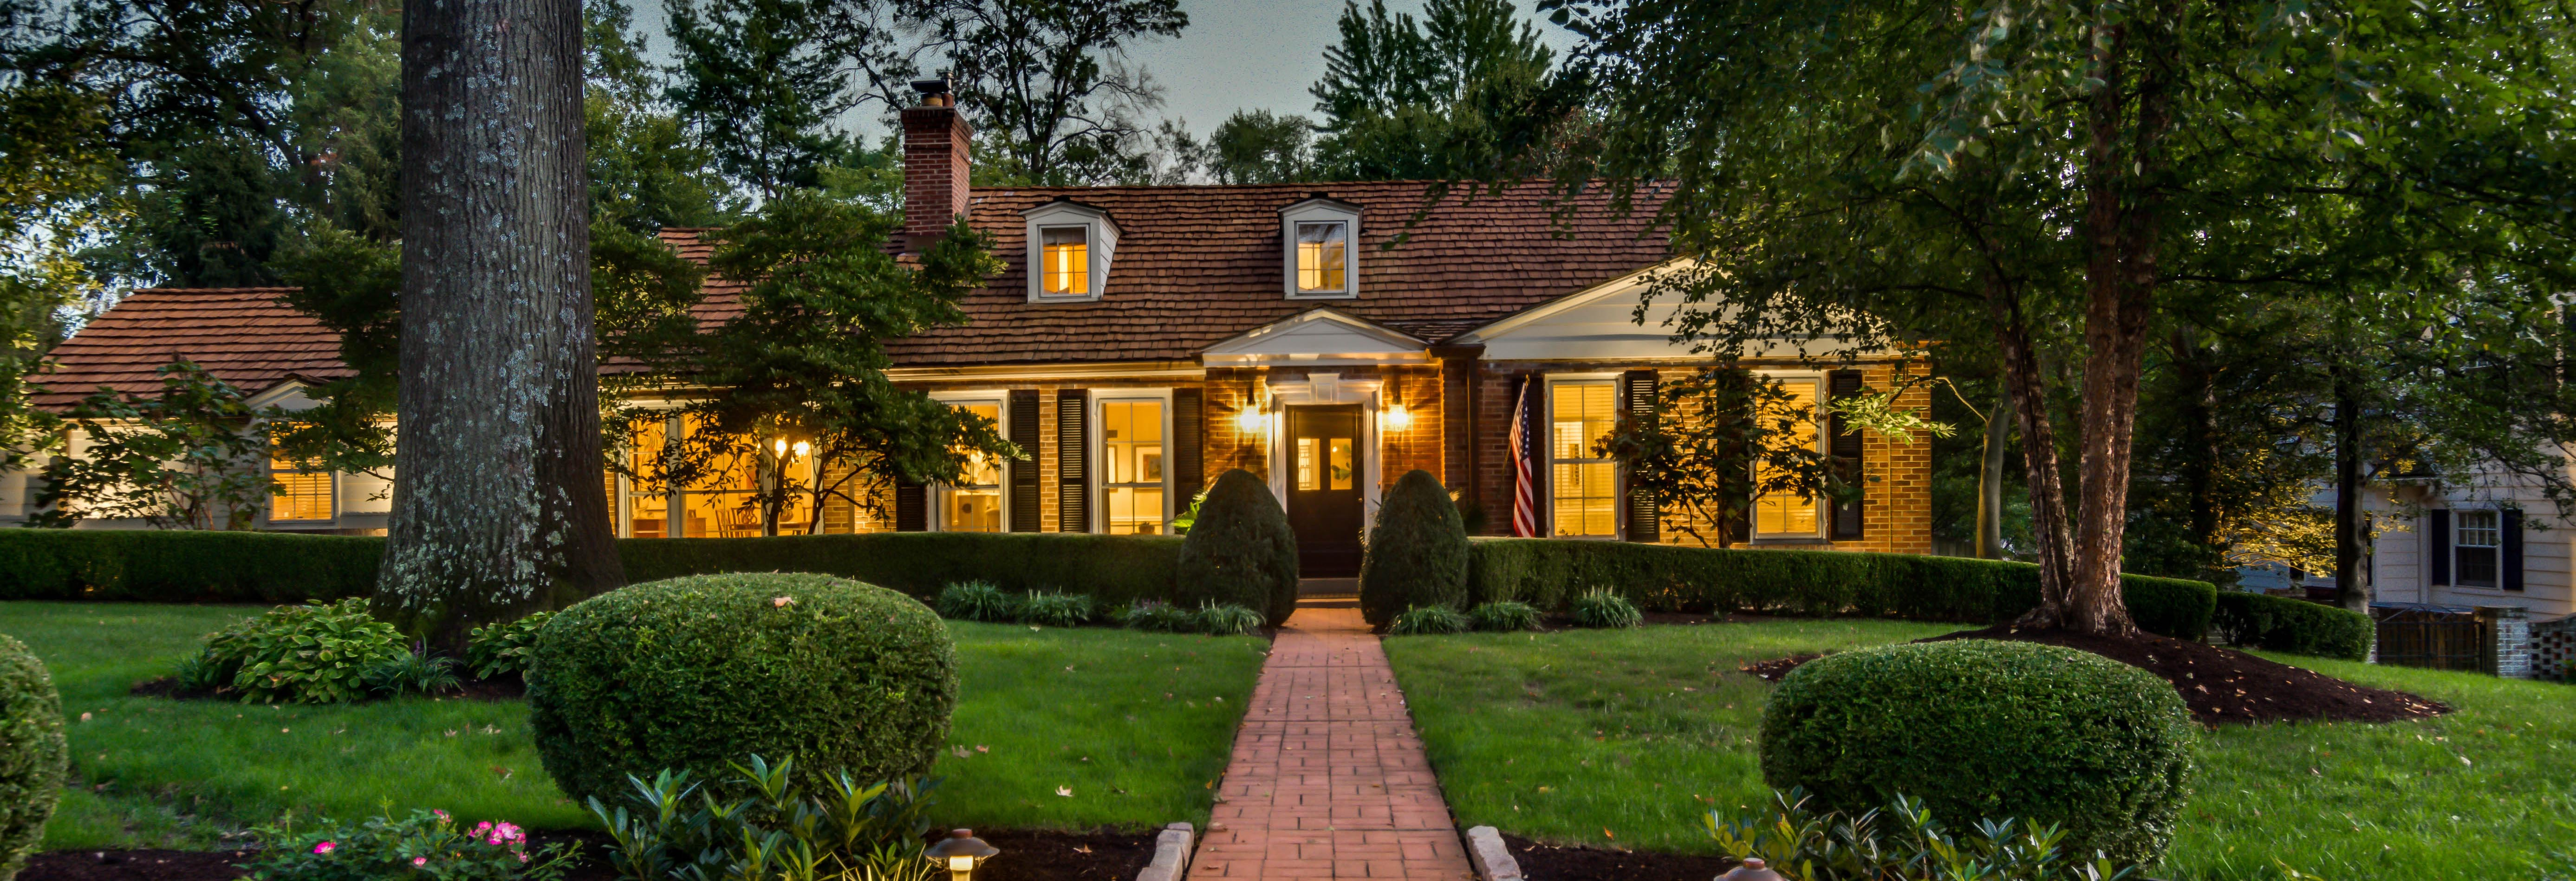 4 Wickersham Lane | Sophisticated Federal style!